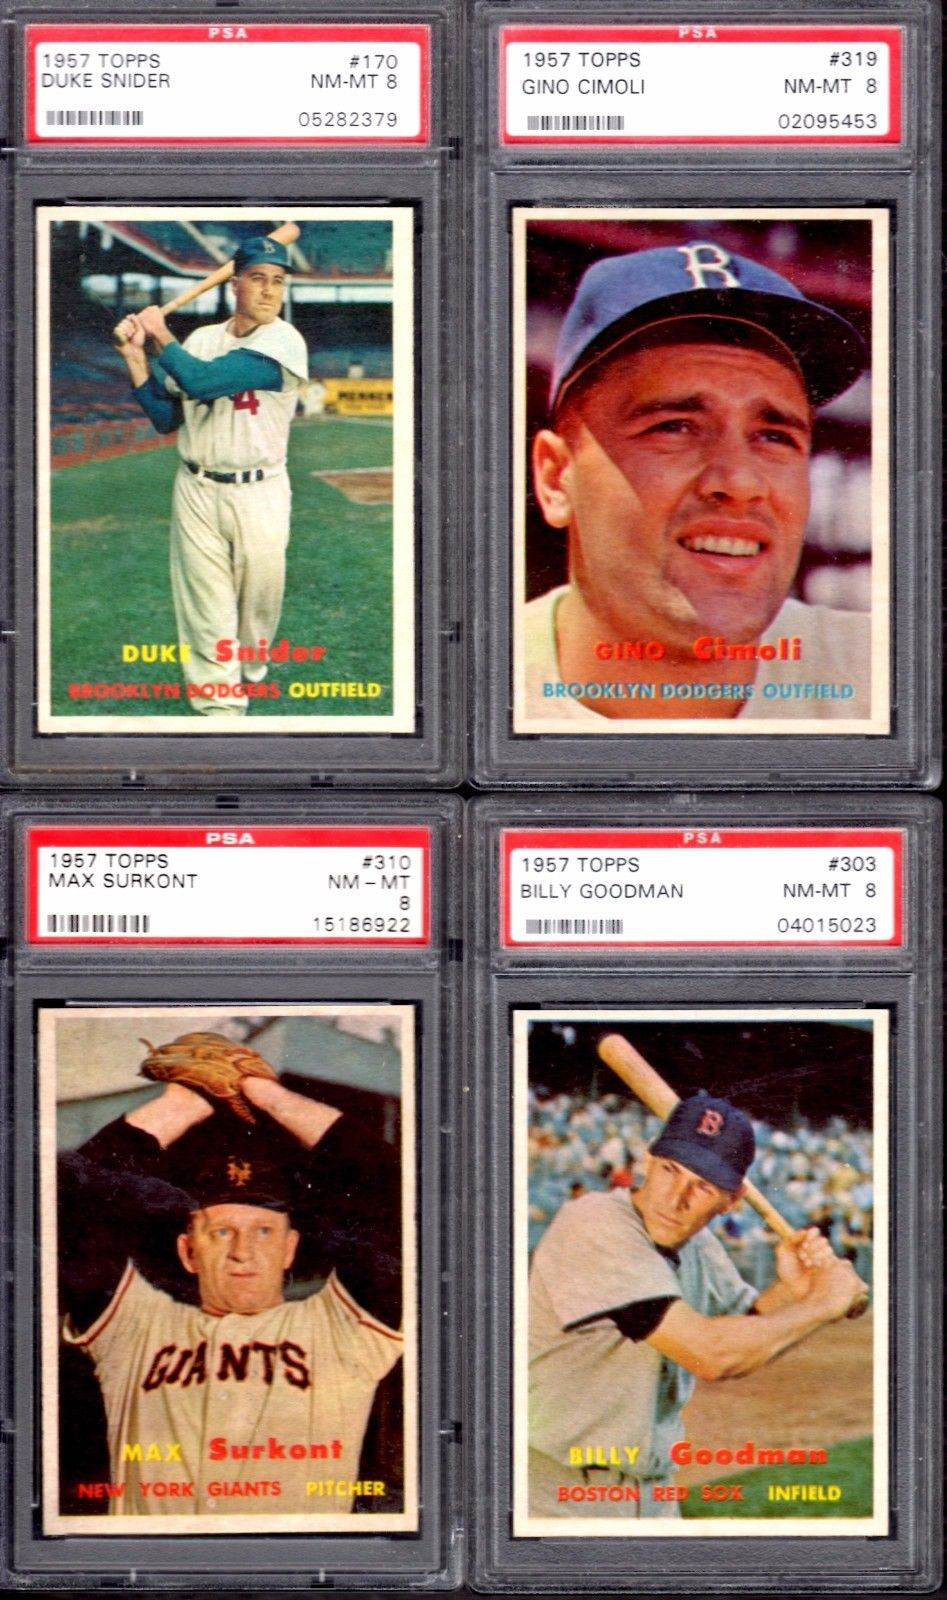 Rare Nm Mt Graded 1957 Topps Baseball Card Set Hits Ebay